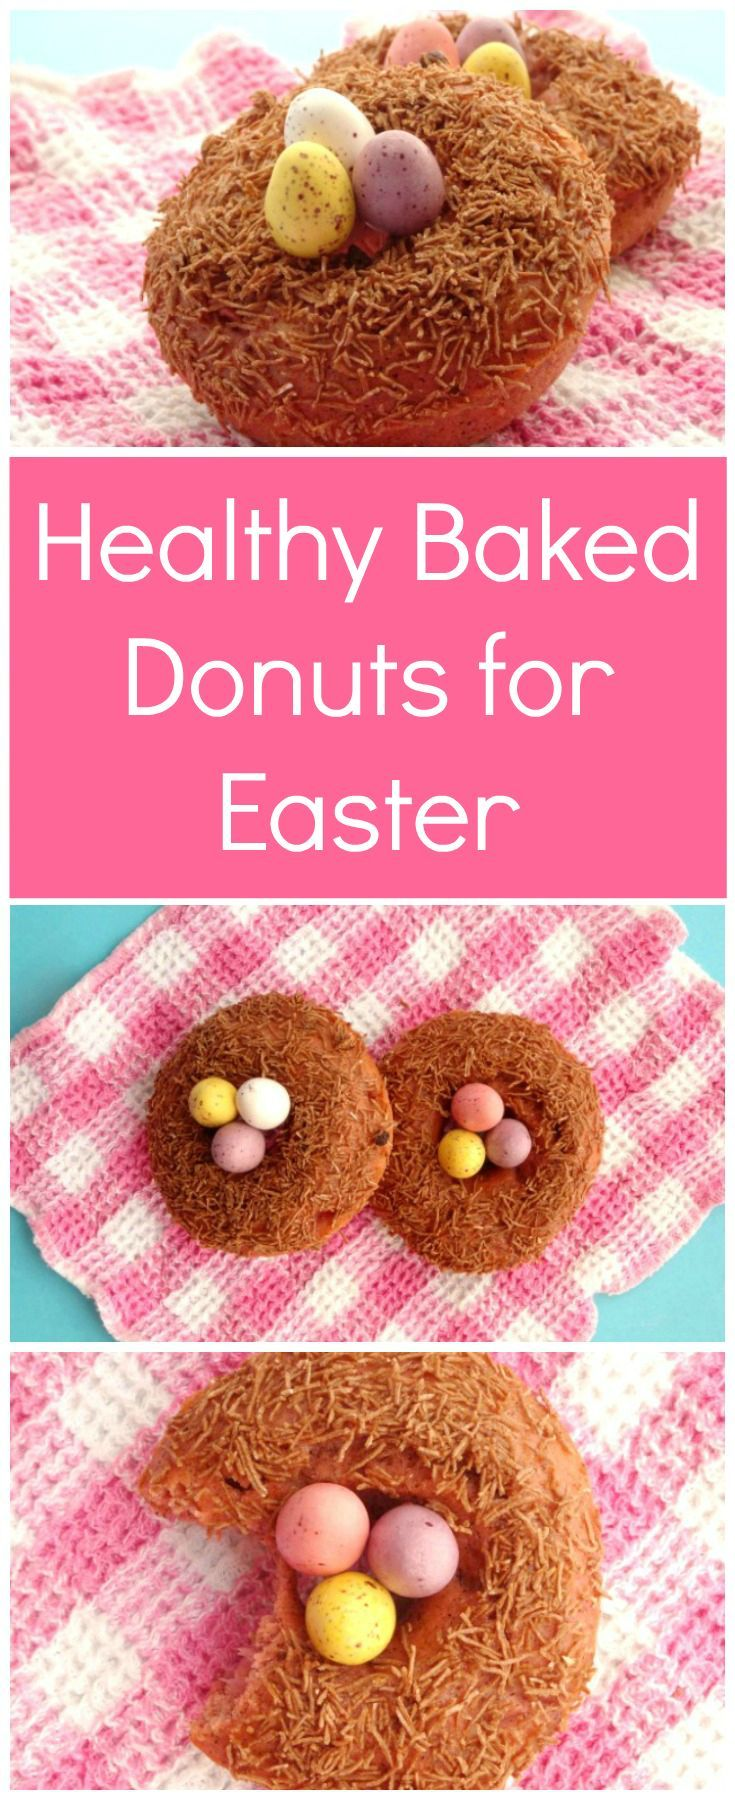 Healthy Baked Donuts for Easter Recipe | Such a cute Easter idea! Baked strawberry donuts topped with All-Bran cereal and chocolate eggs to look like bird nests. I love cute Easter food!